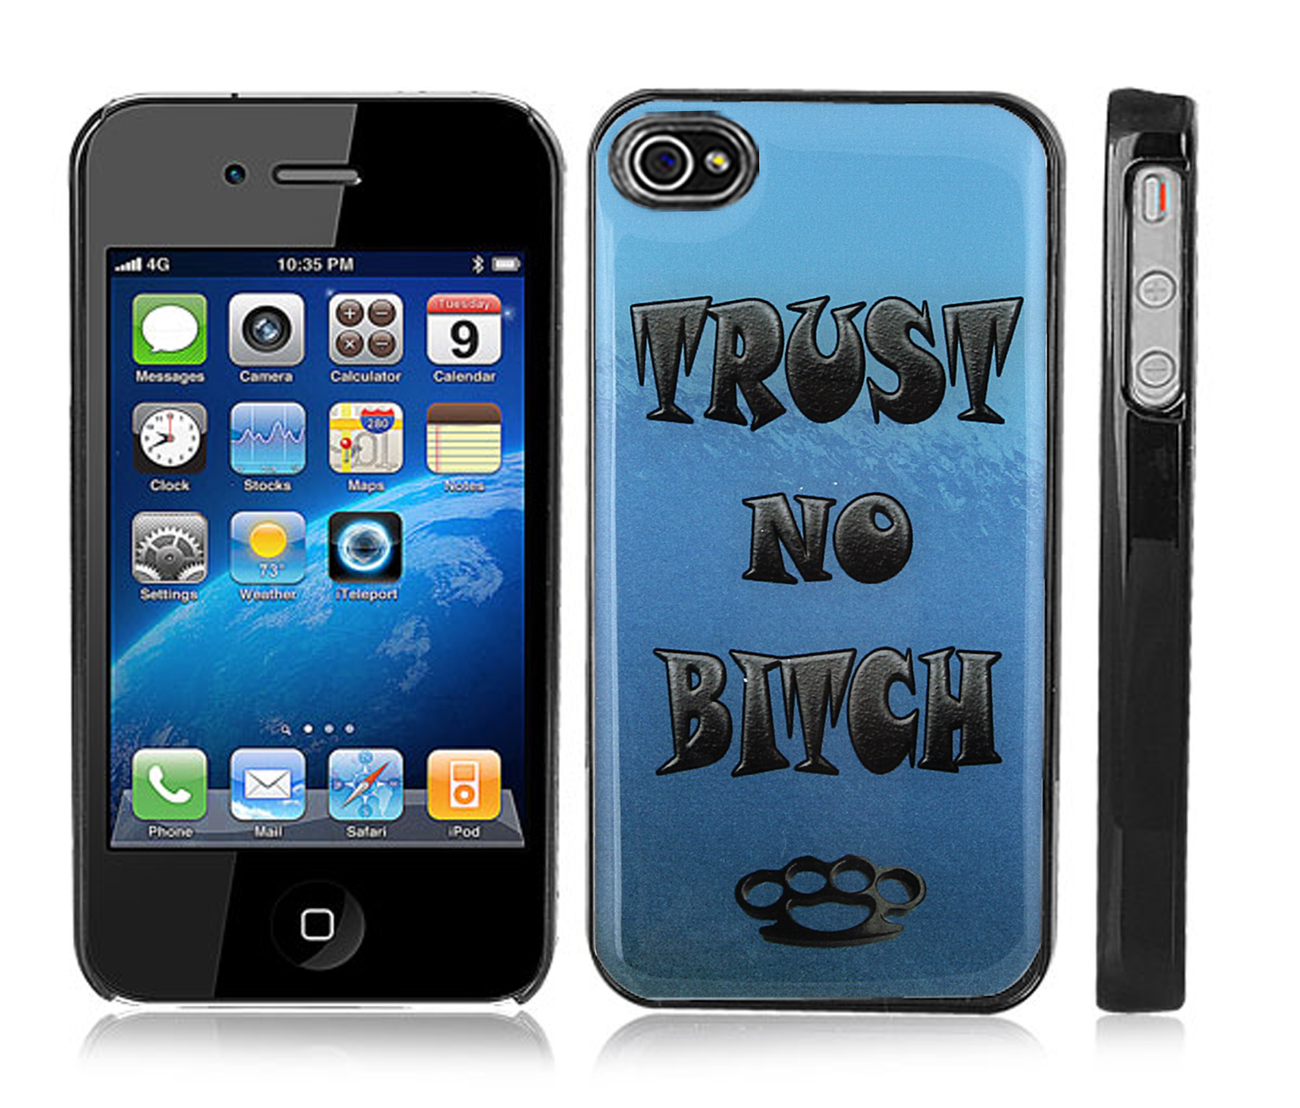 Black Snap-on iPhone 4/4s Cover Case - Trust No Bitch Design